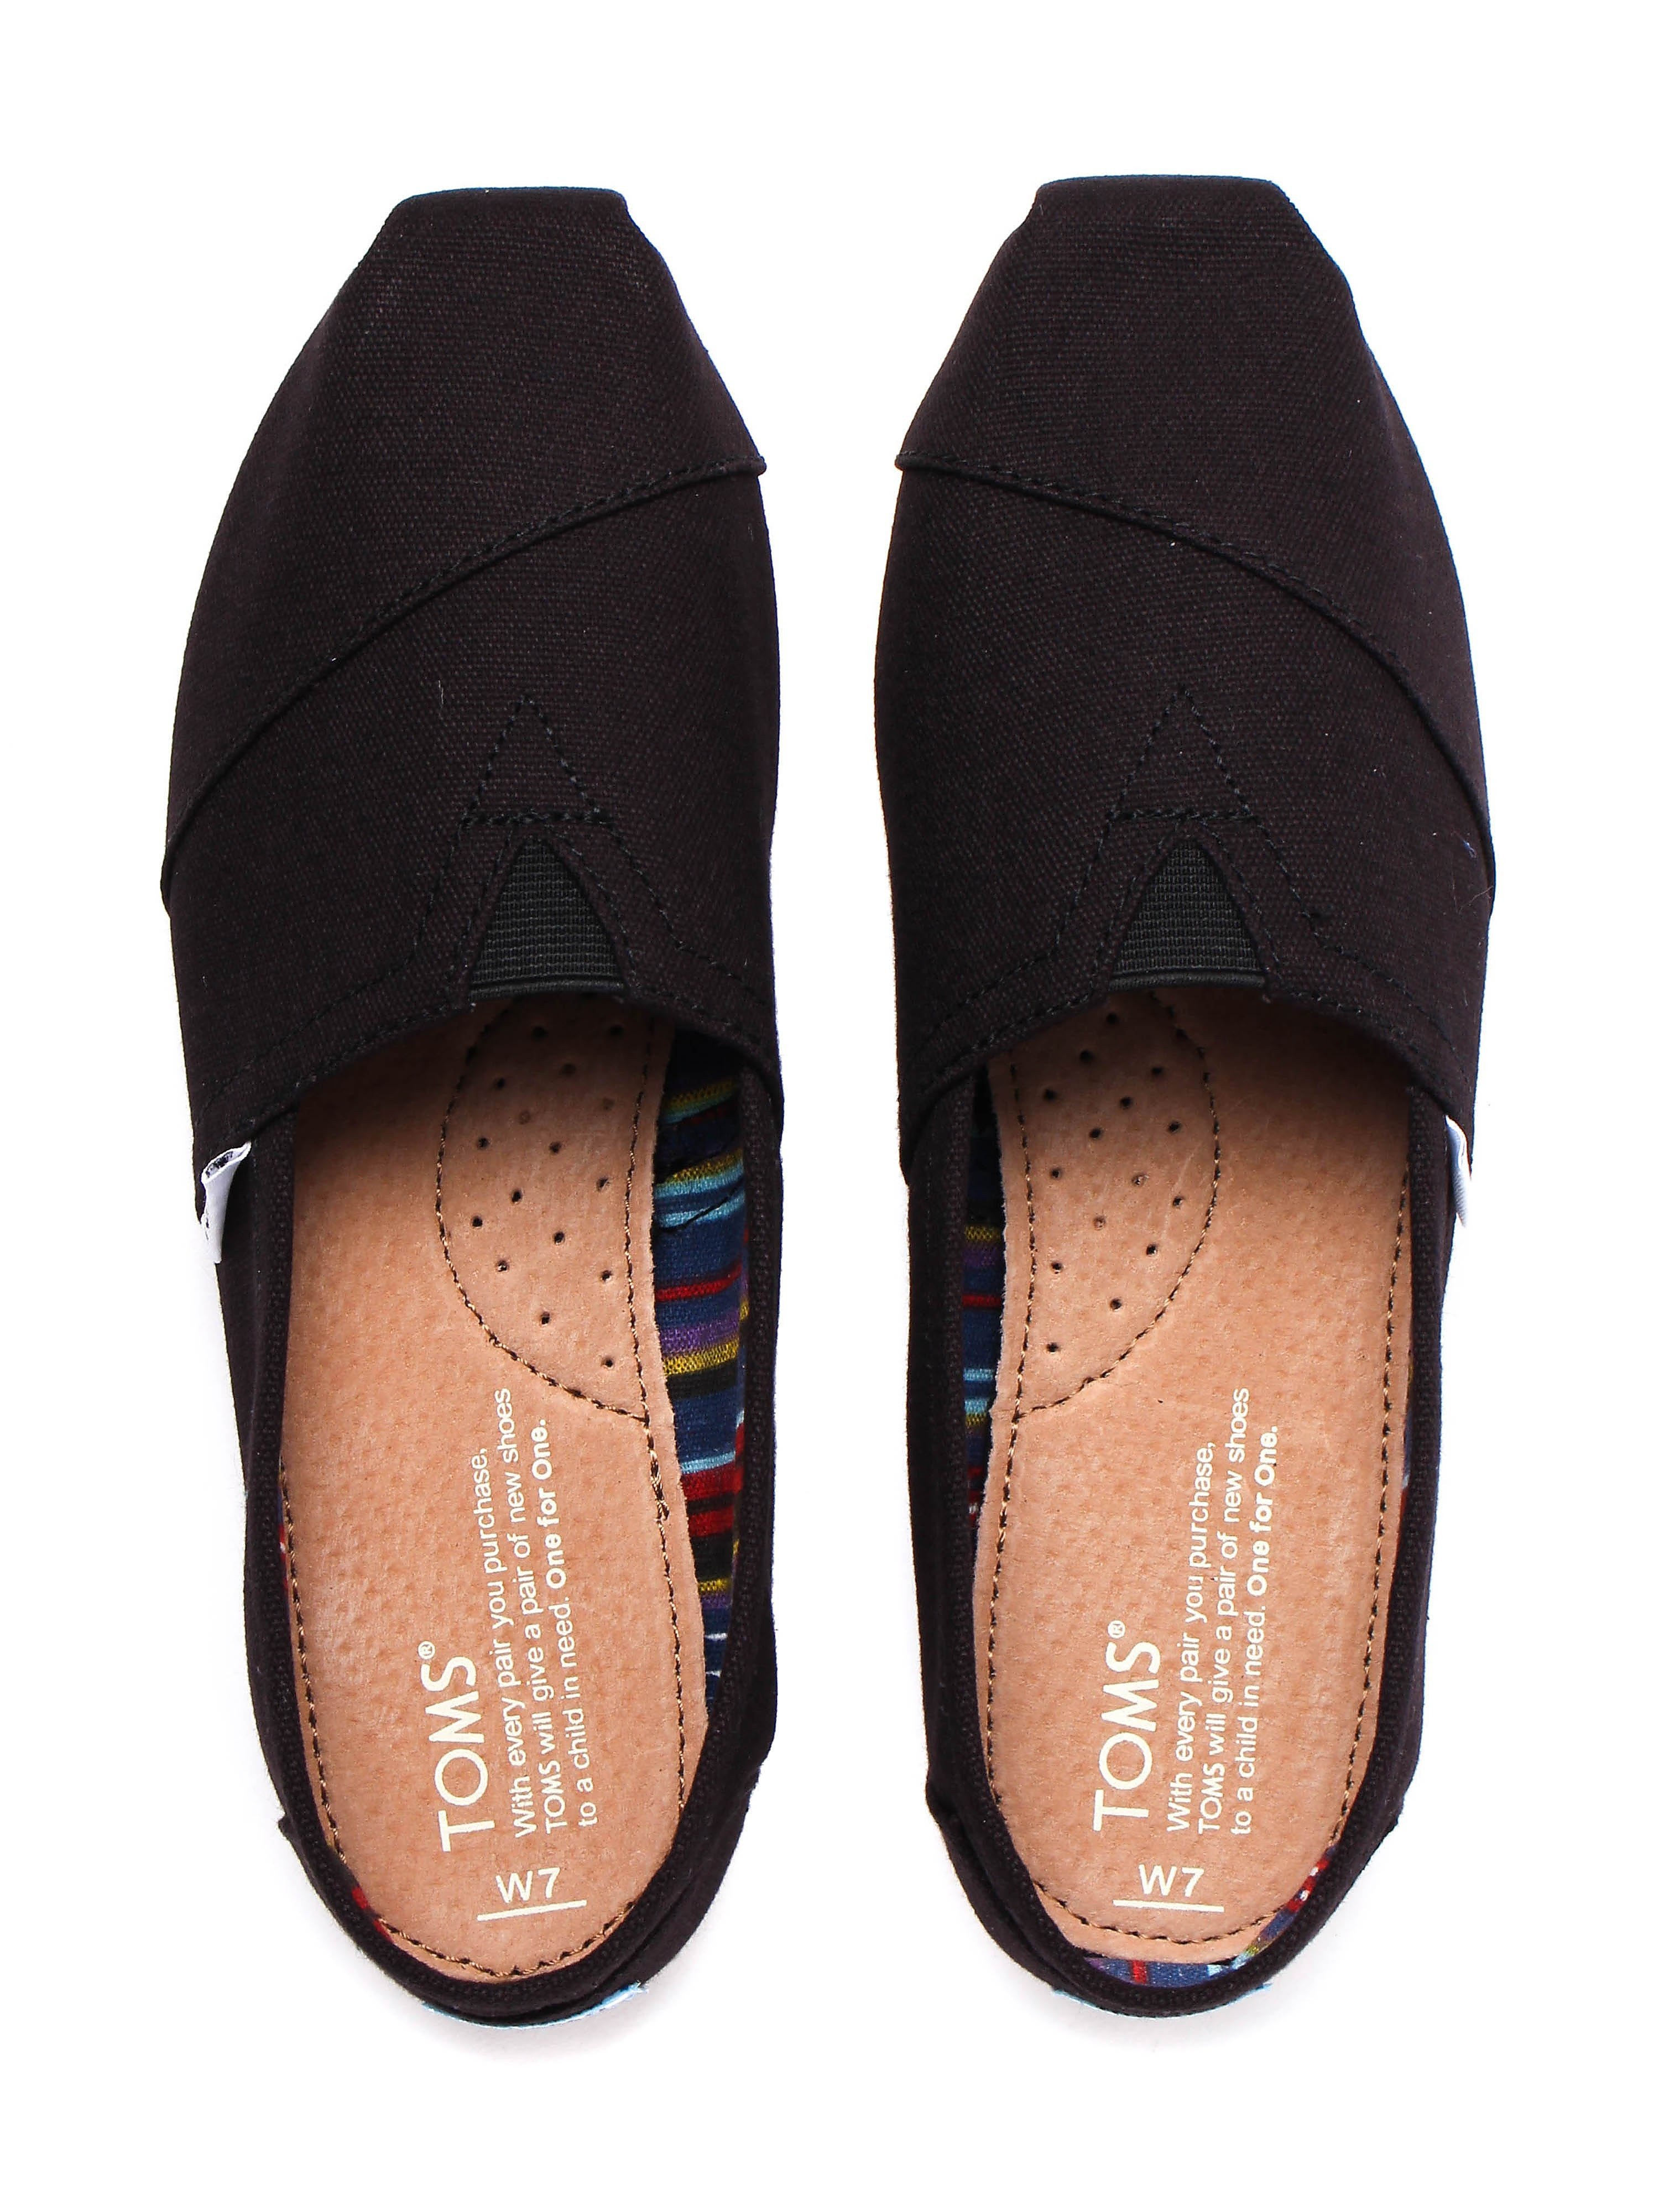 Toms Womens Classic Canvas Slip-On Shoes - Black